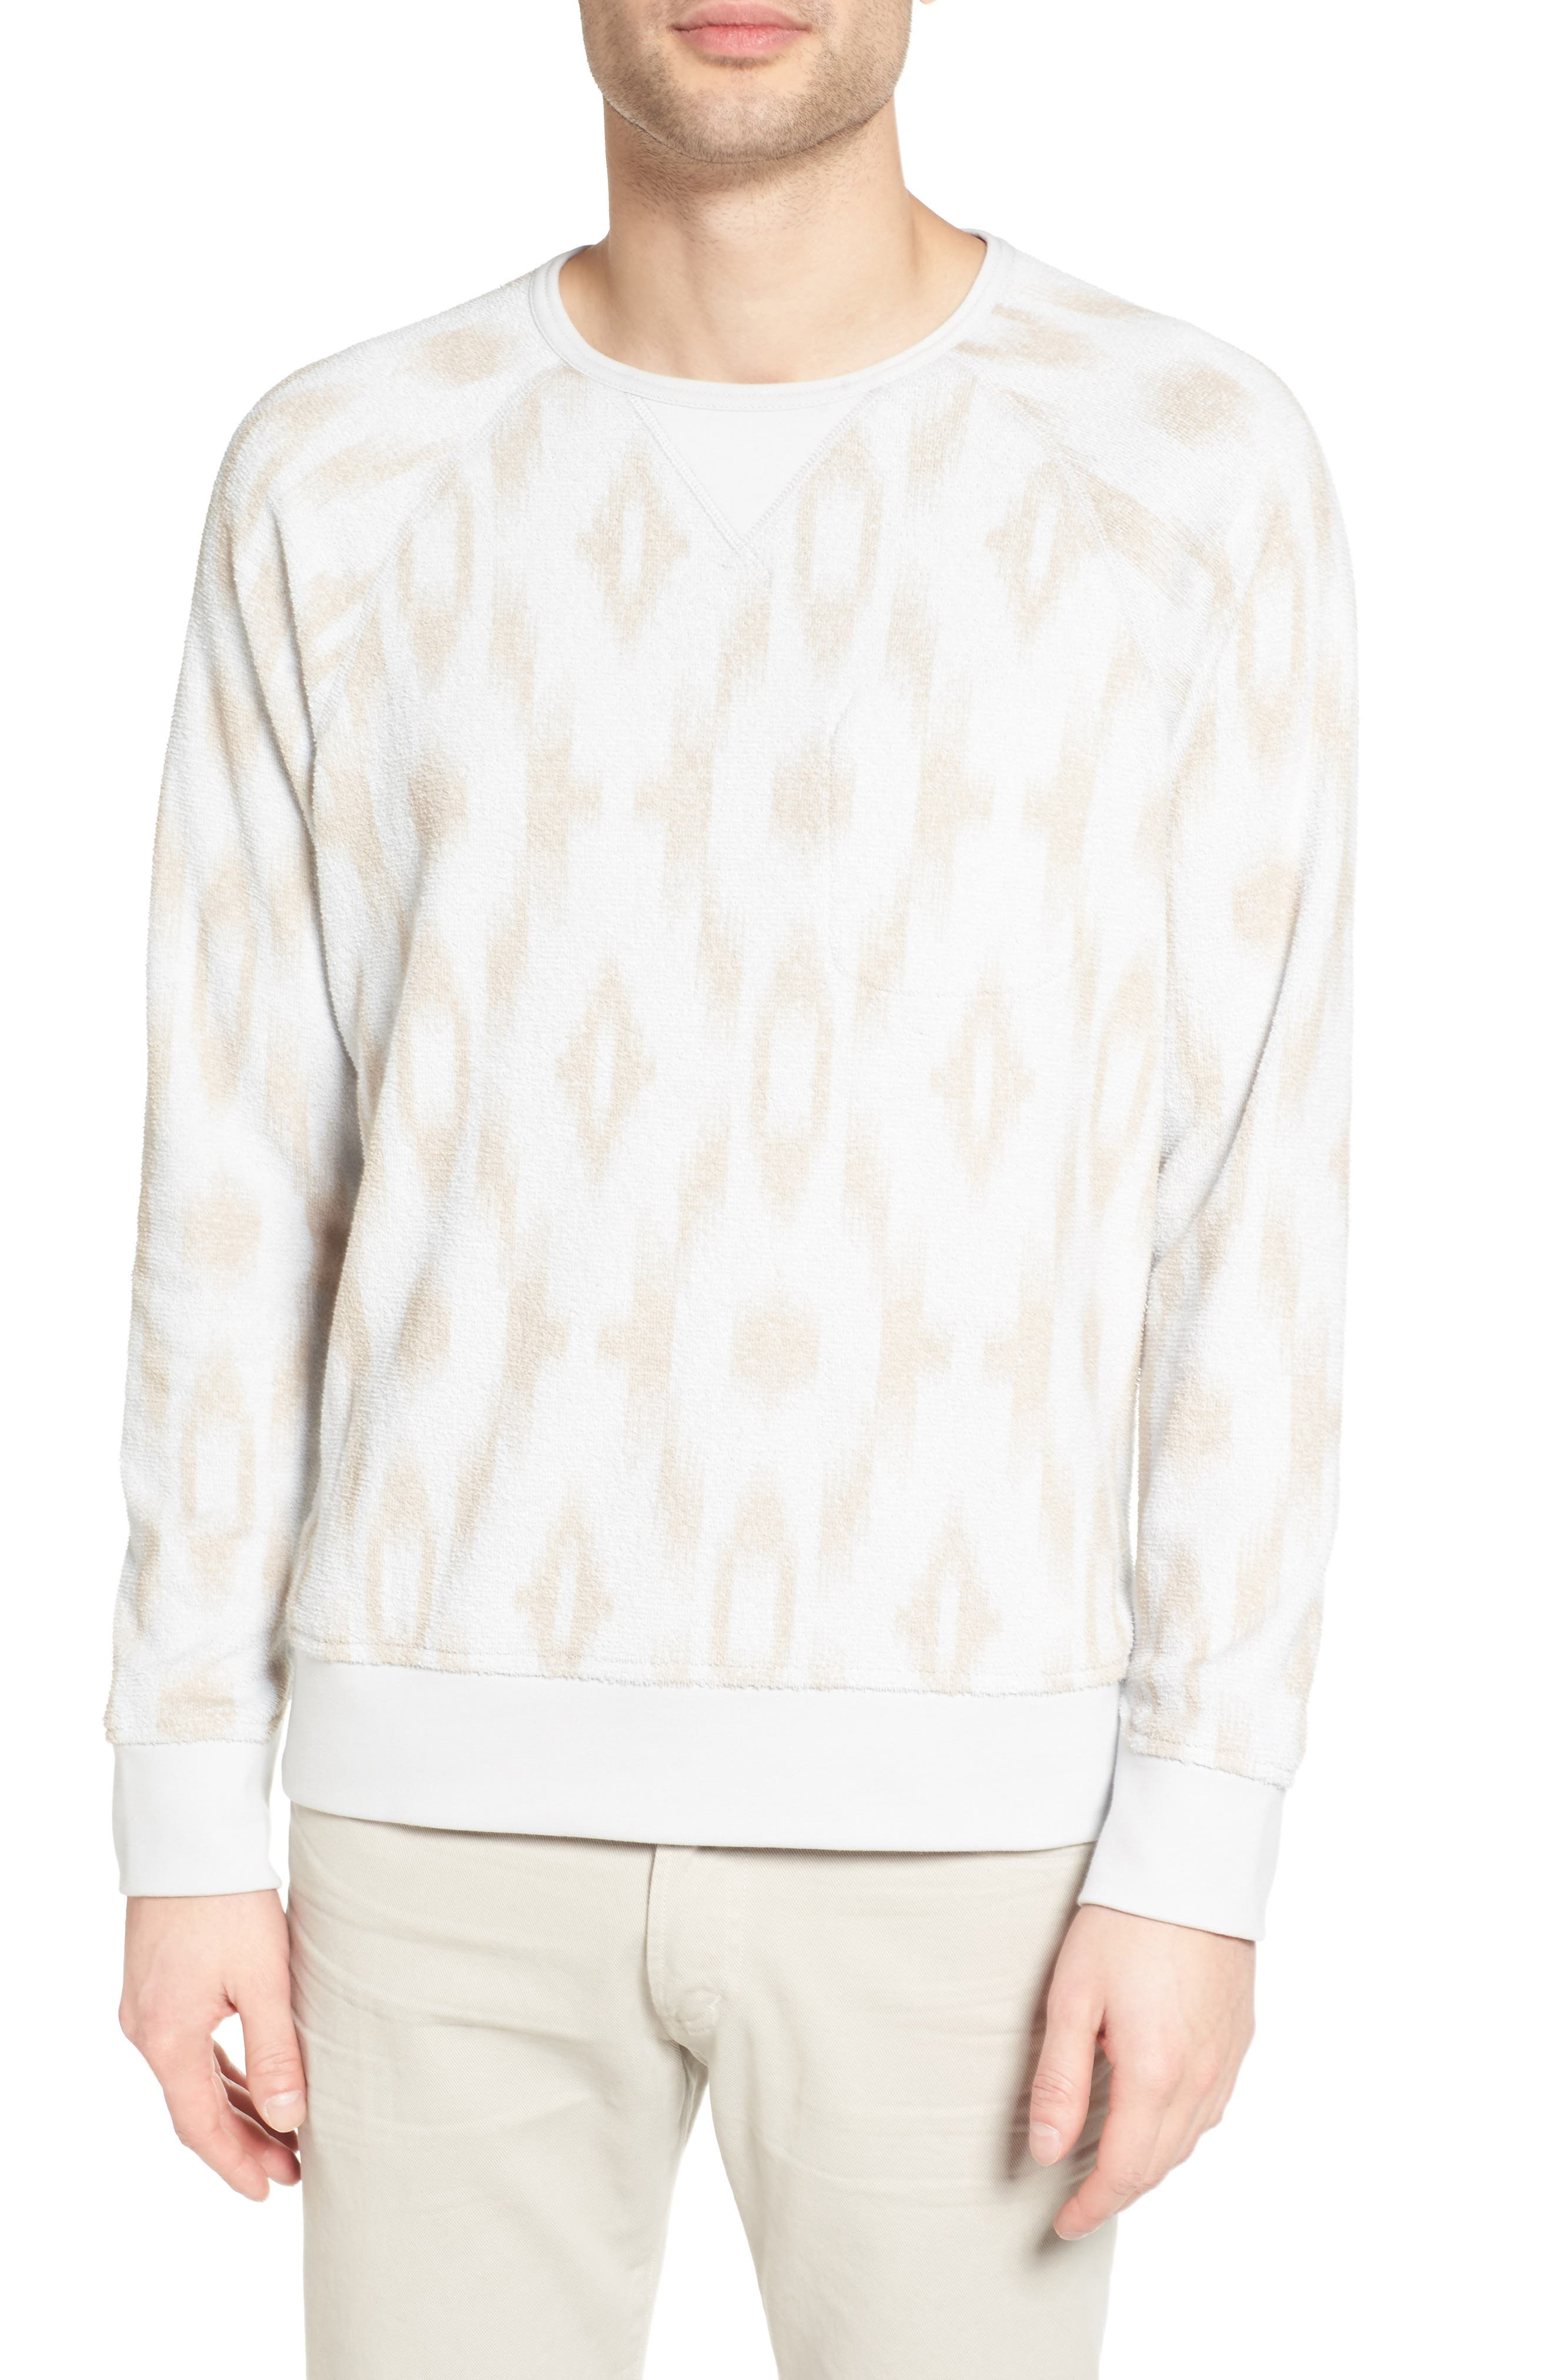 Outerknown Lowtide Classic Fit Terry Sweatshirt